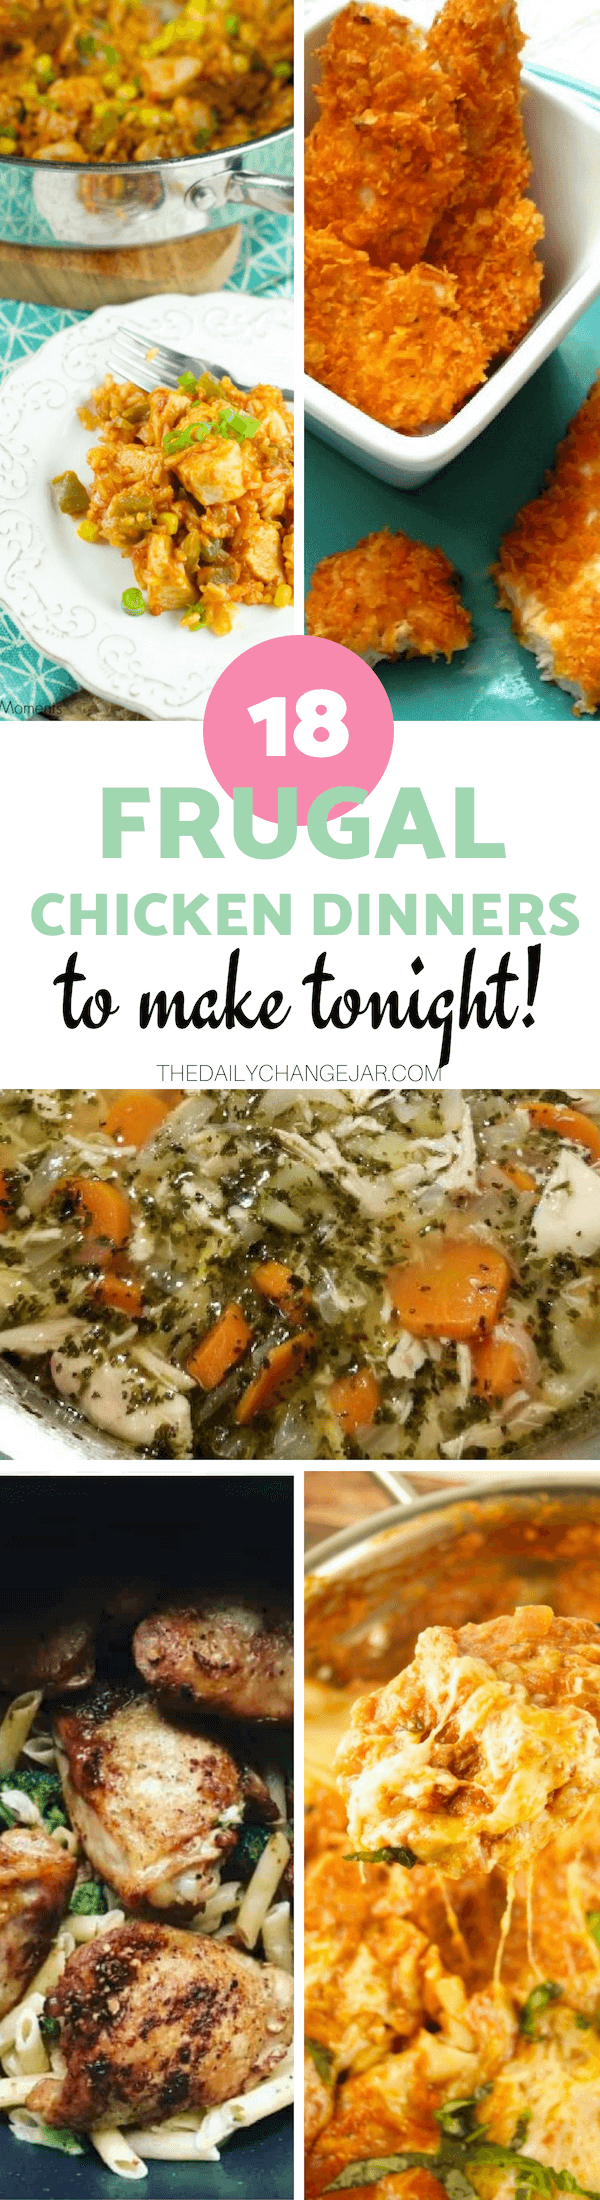 18 frugal chicken dinners to make tonight! Food makes up a lot of our budgets. But what do you do when money is really tight? Here are 18 frugal chicken dinners to make when you're broke. #frugalmeals #frugalmealshealthy #frugalmealsforlargefamilies #frugalmealsfortwo #frugalmealsfromscratch #frugalmealsforfour #frugalmealsgroceriesbudget #easyfrugalmeals #frugalmealswithchicken #crockpotfrugalmeals #instantpotfrugalmeals